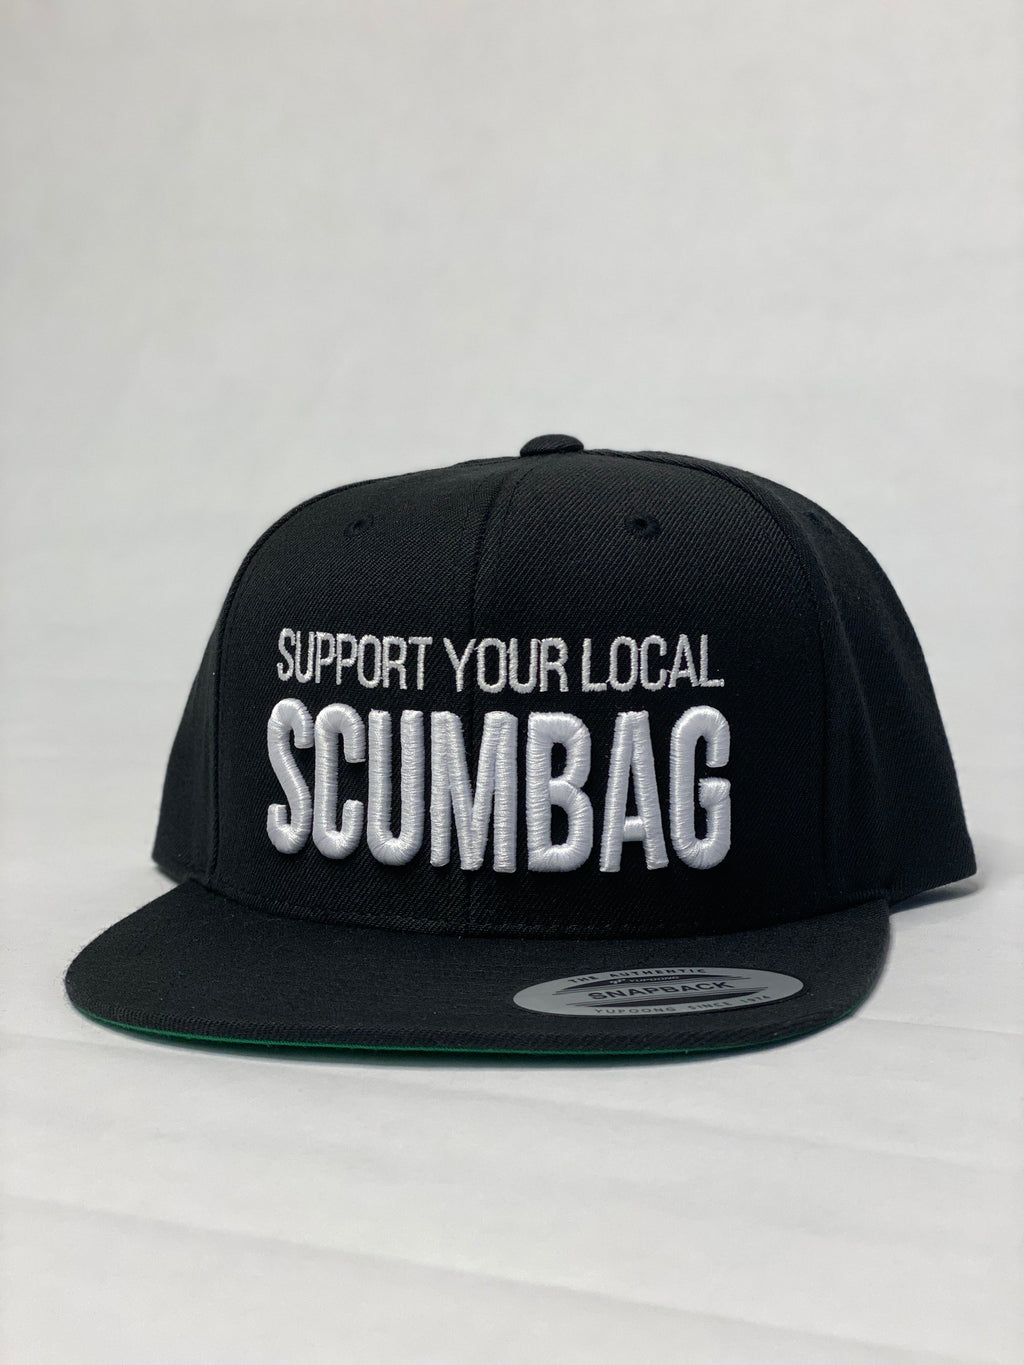 [Best Selling Trendy Apparel For Men & Women Online]-Local AF Apparel